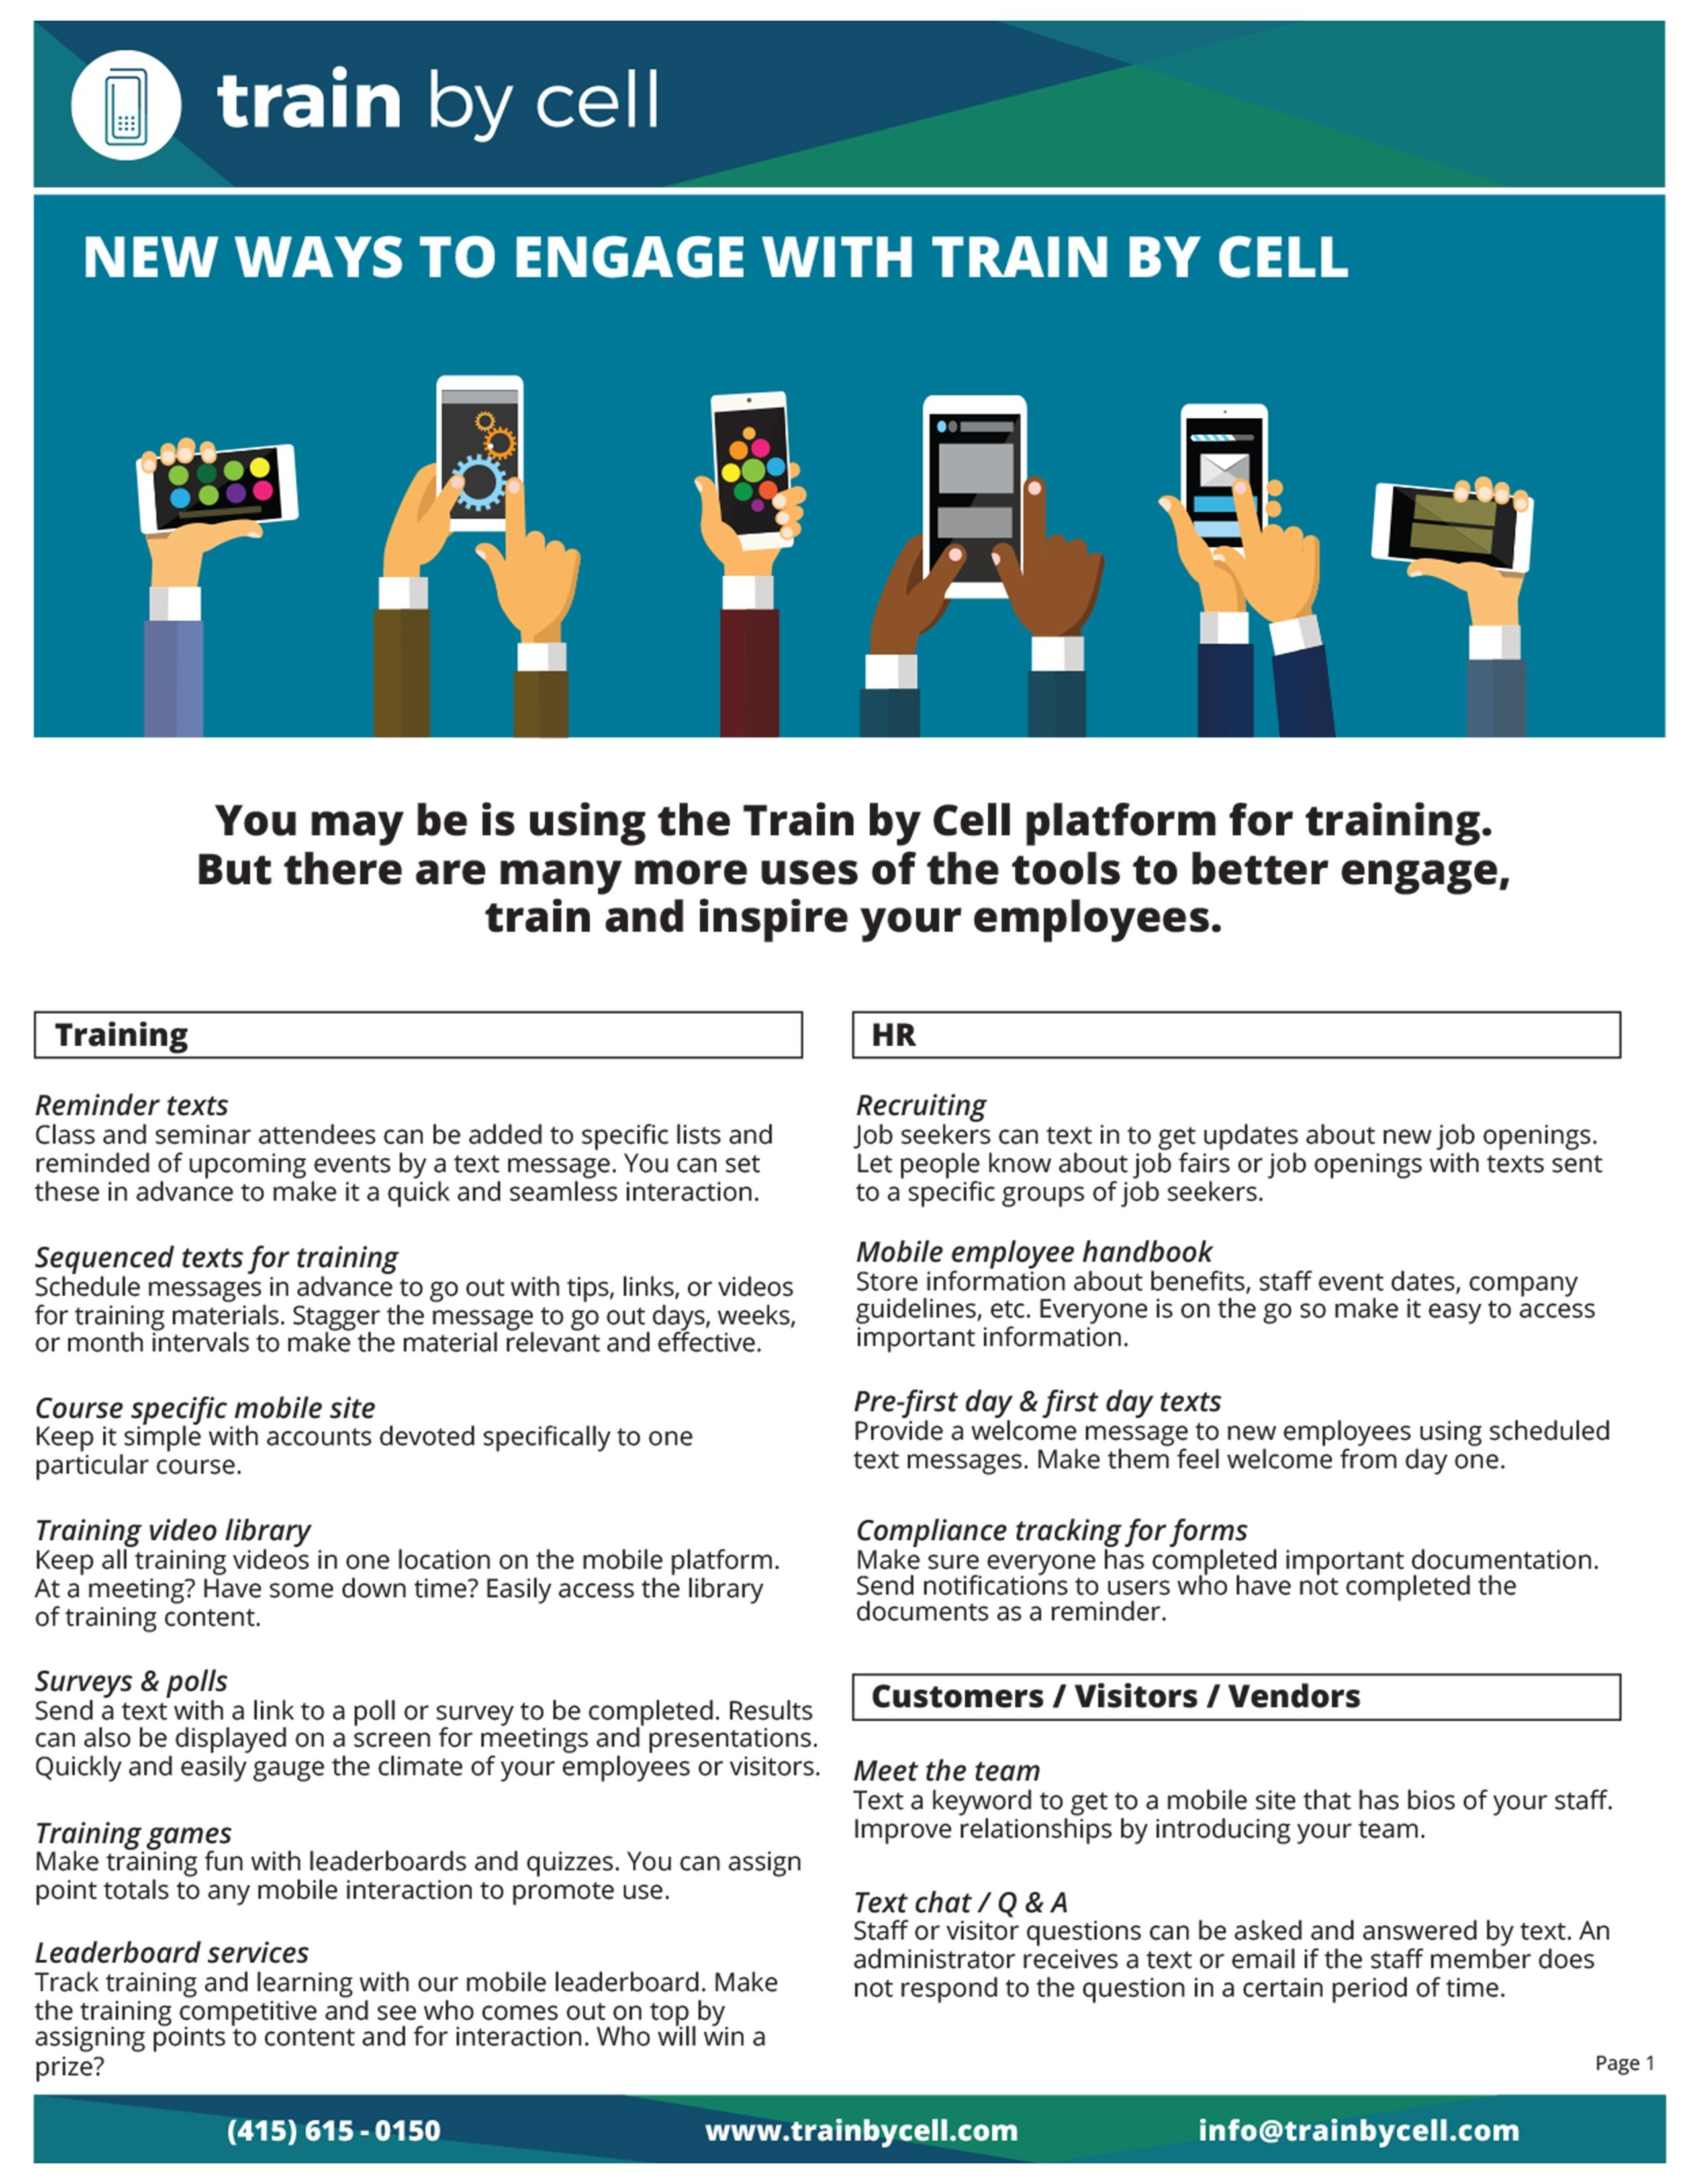 TRAIN_ONE-PAGER_NEWWAYS_GENERAL_MAY18-1.png.jpg